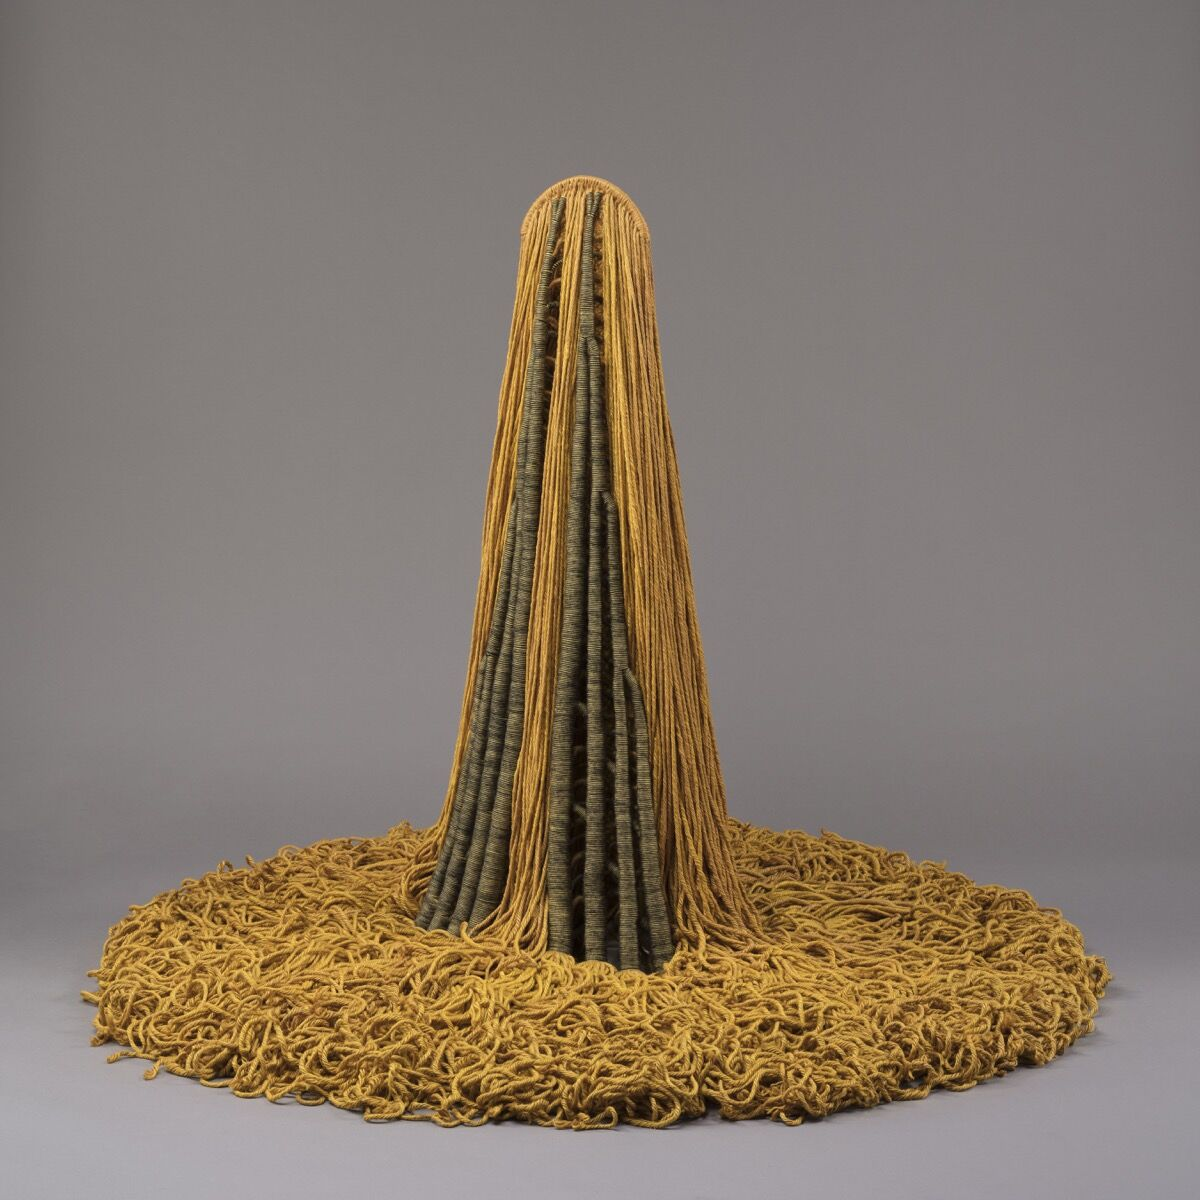 Claire Zeisler, Free Standing Yellow, 1968. Courtesy of the Art Institute of Chicago.